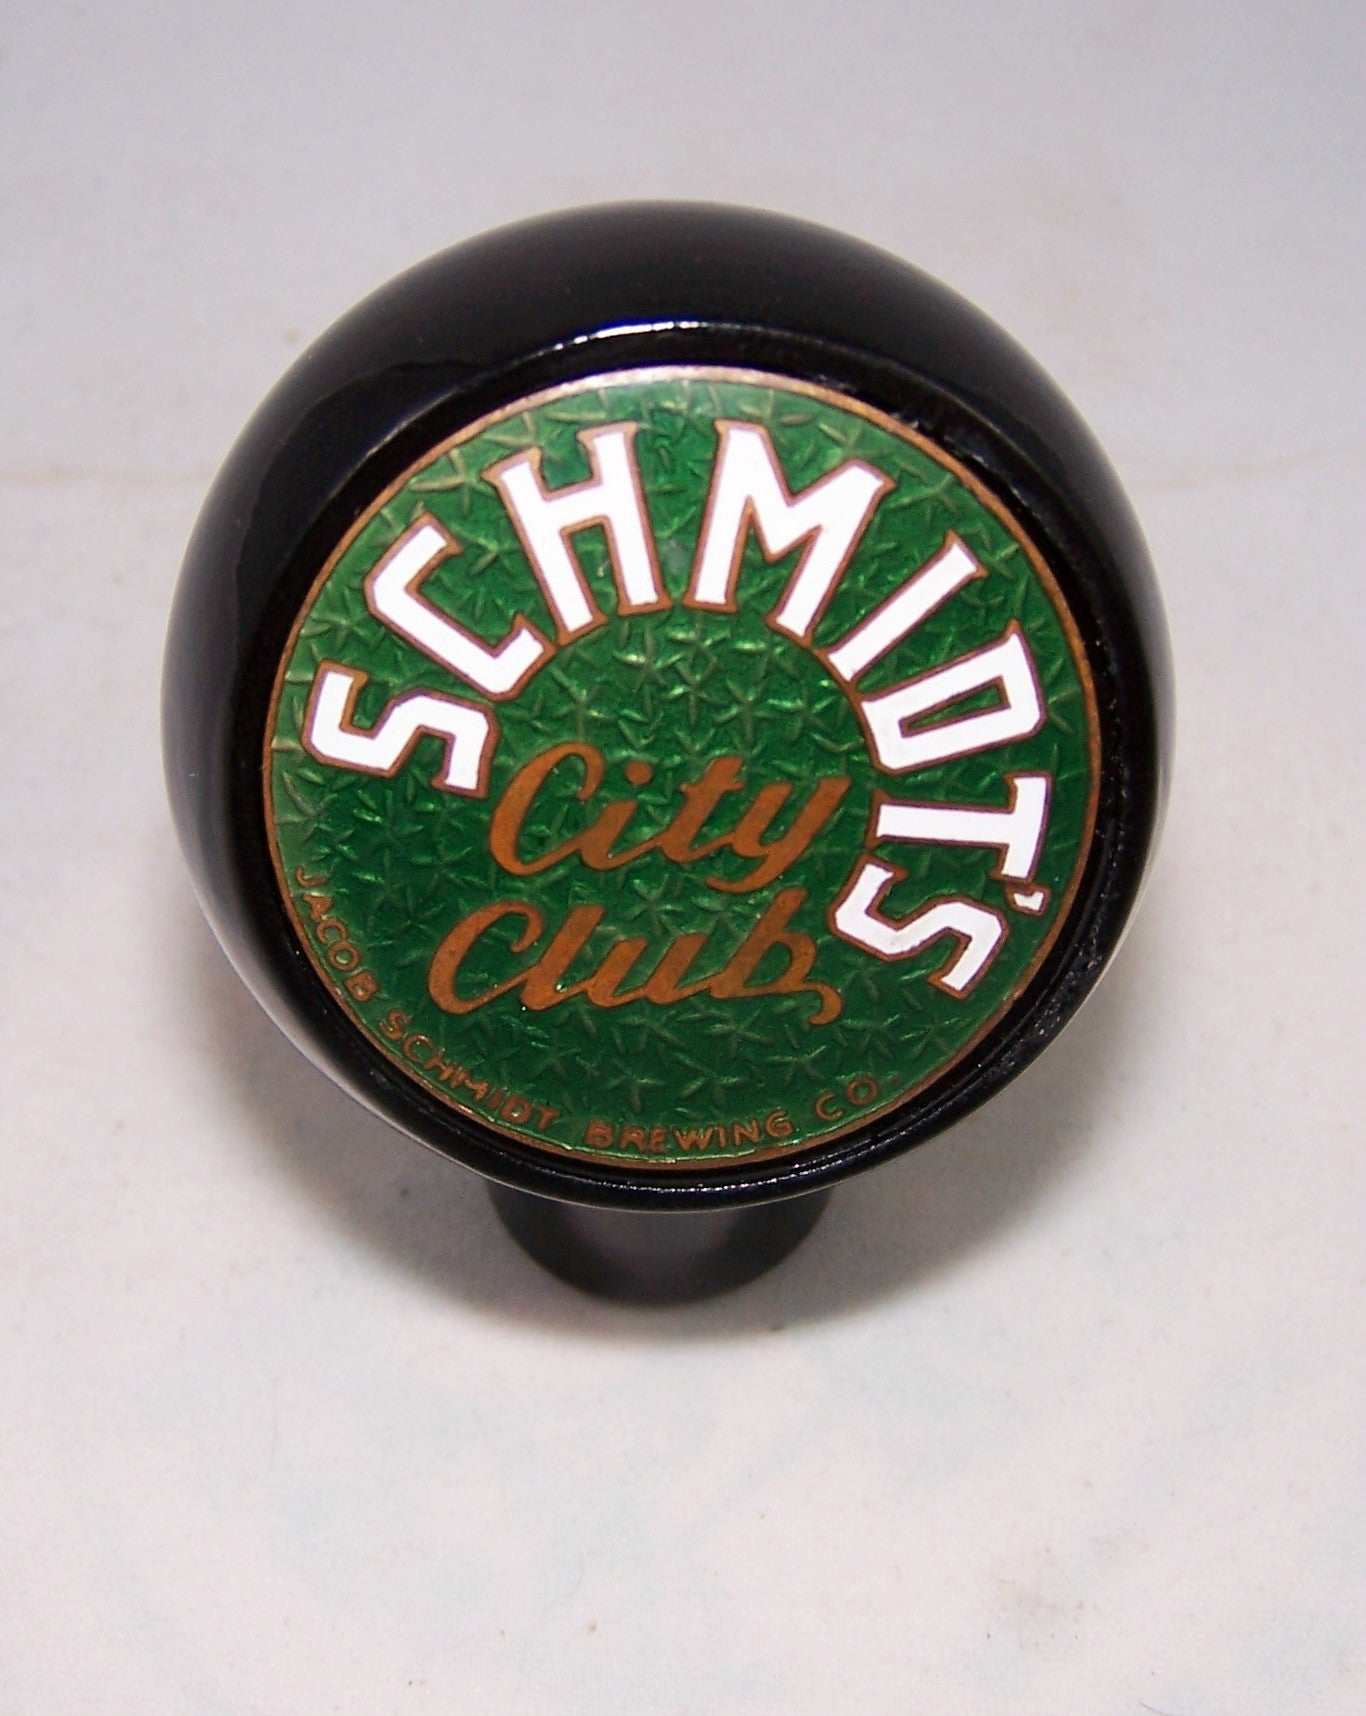 Schmidt's City Club , Tap Markers page 72-562, Grade 9+ Sold on 02/13/16